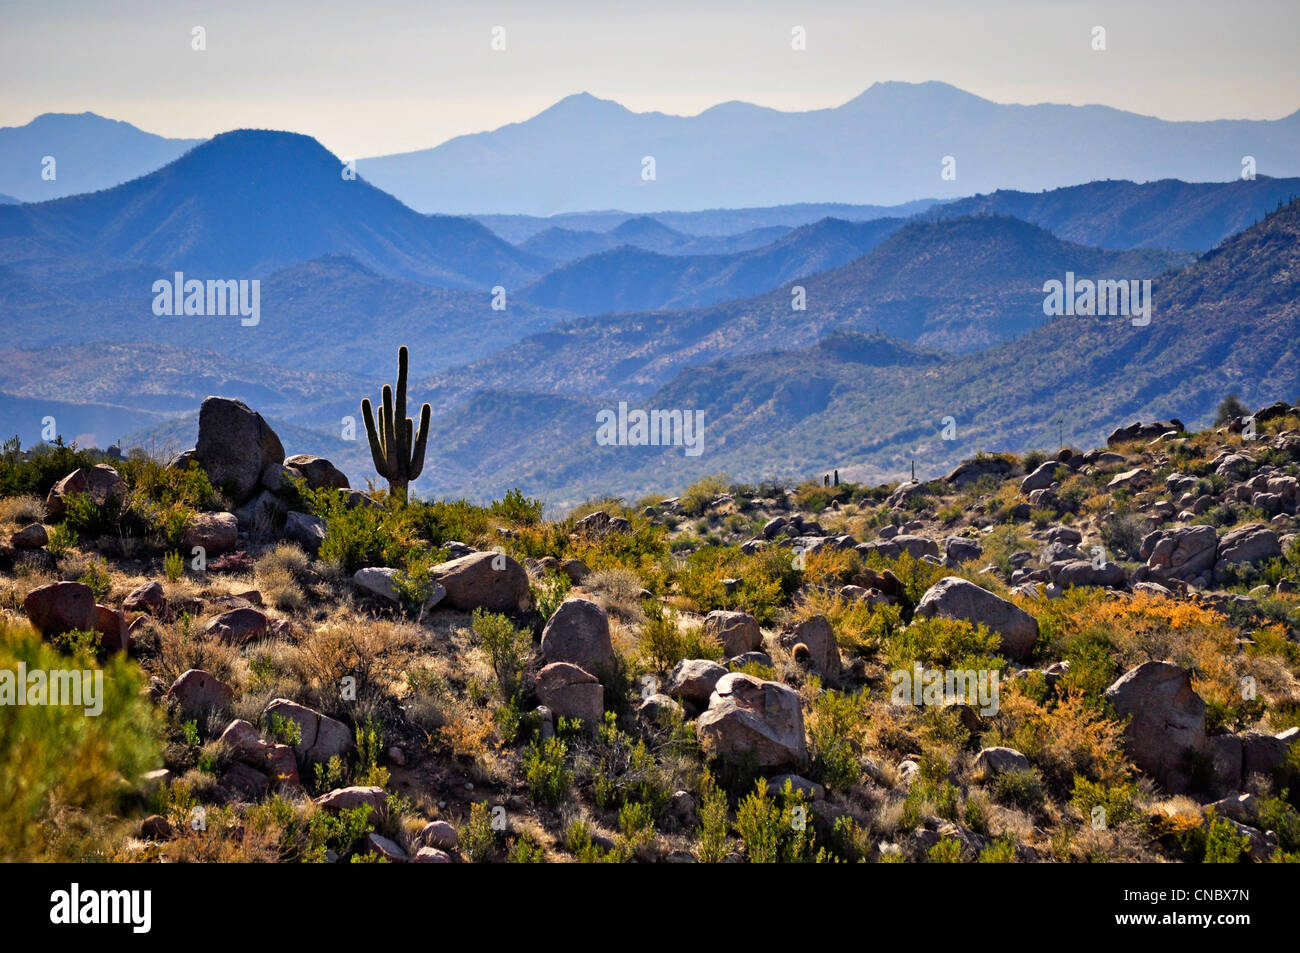 Arizona Landscape - Stock Image